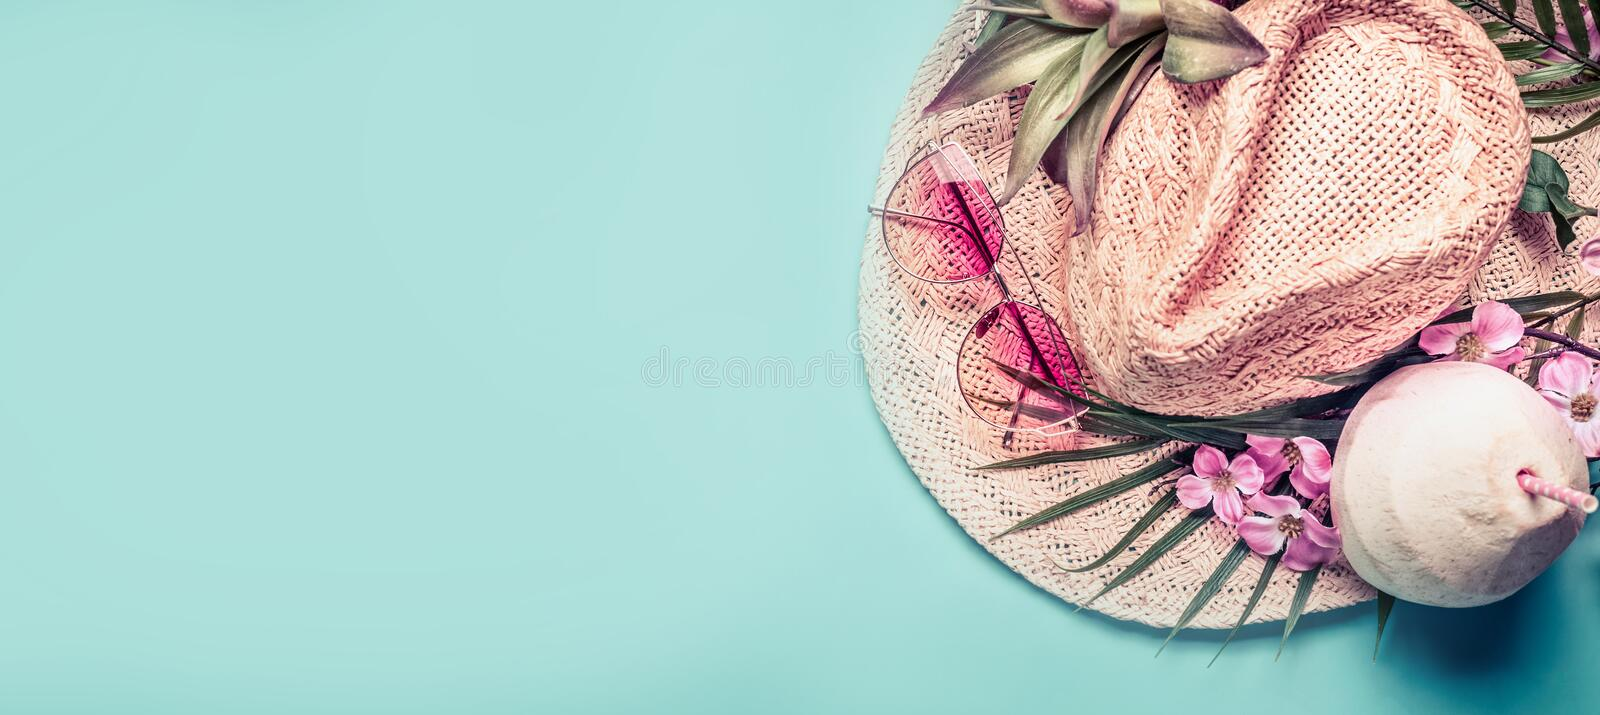 Summer holiday banner. Beach accessories : straw hat, palm leaves, pink sun glasses, flowers and coconut cocktail on blue turquoi royalty free stock photo